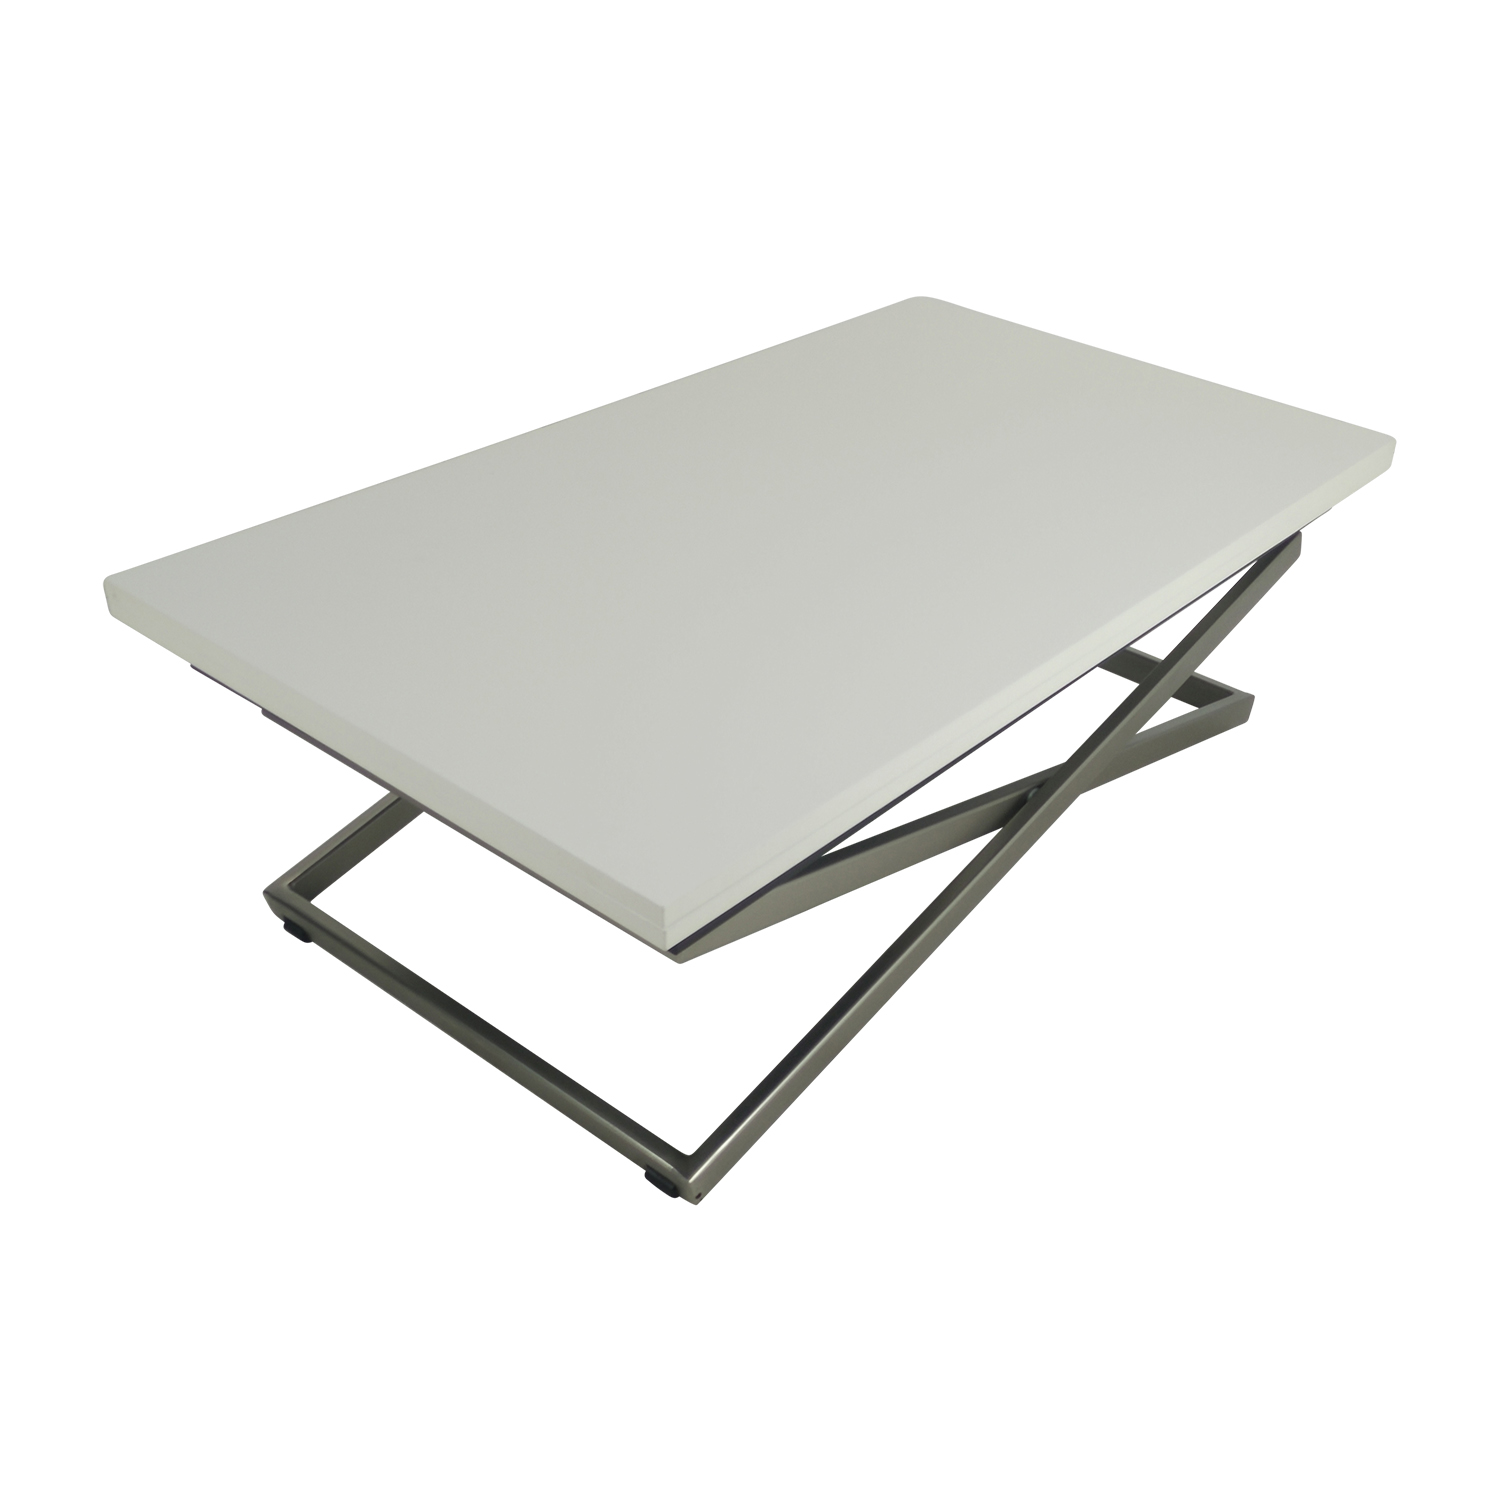 Convertible Coffee Table Image Of Convertible Coffee Table Design Images Convertible Coffee